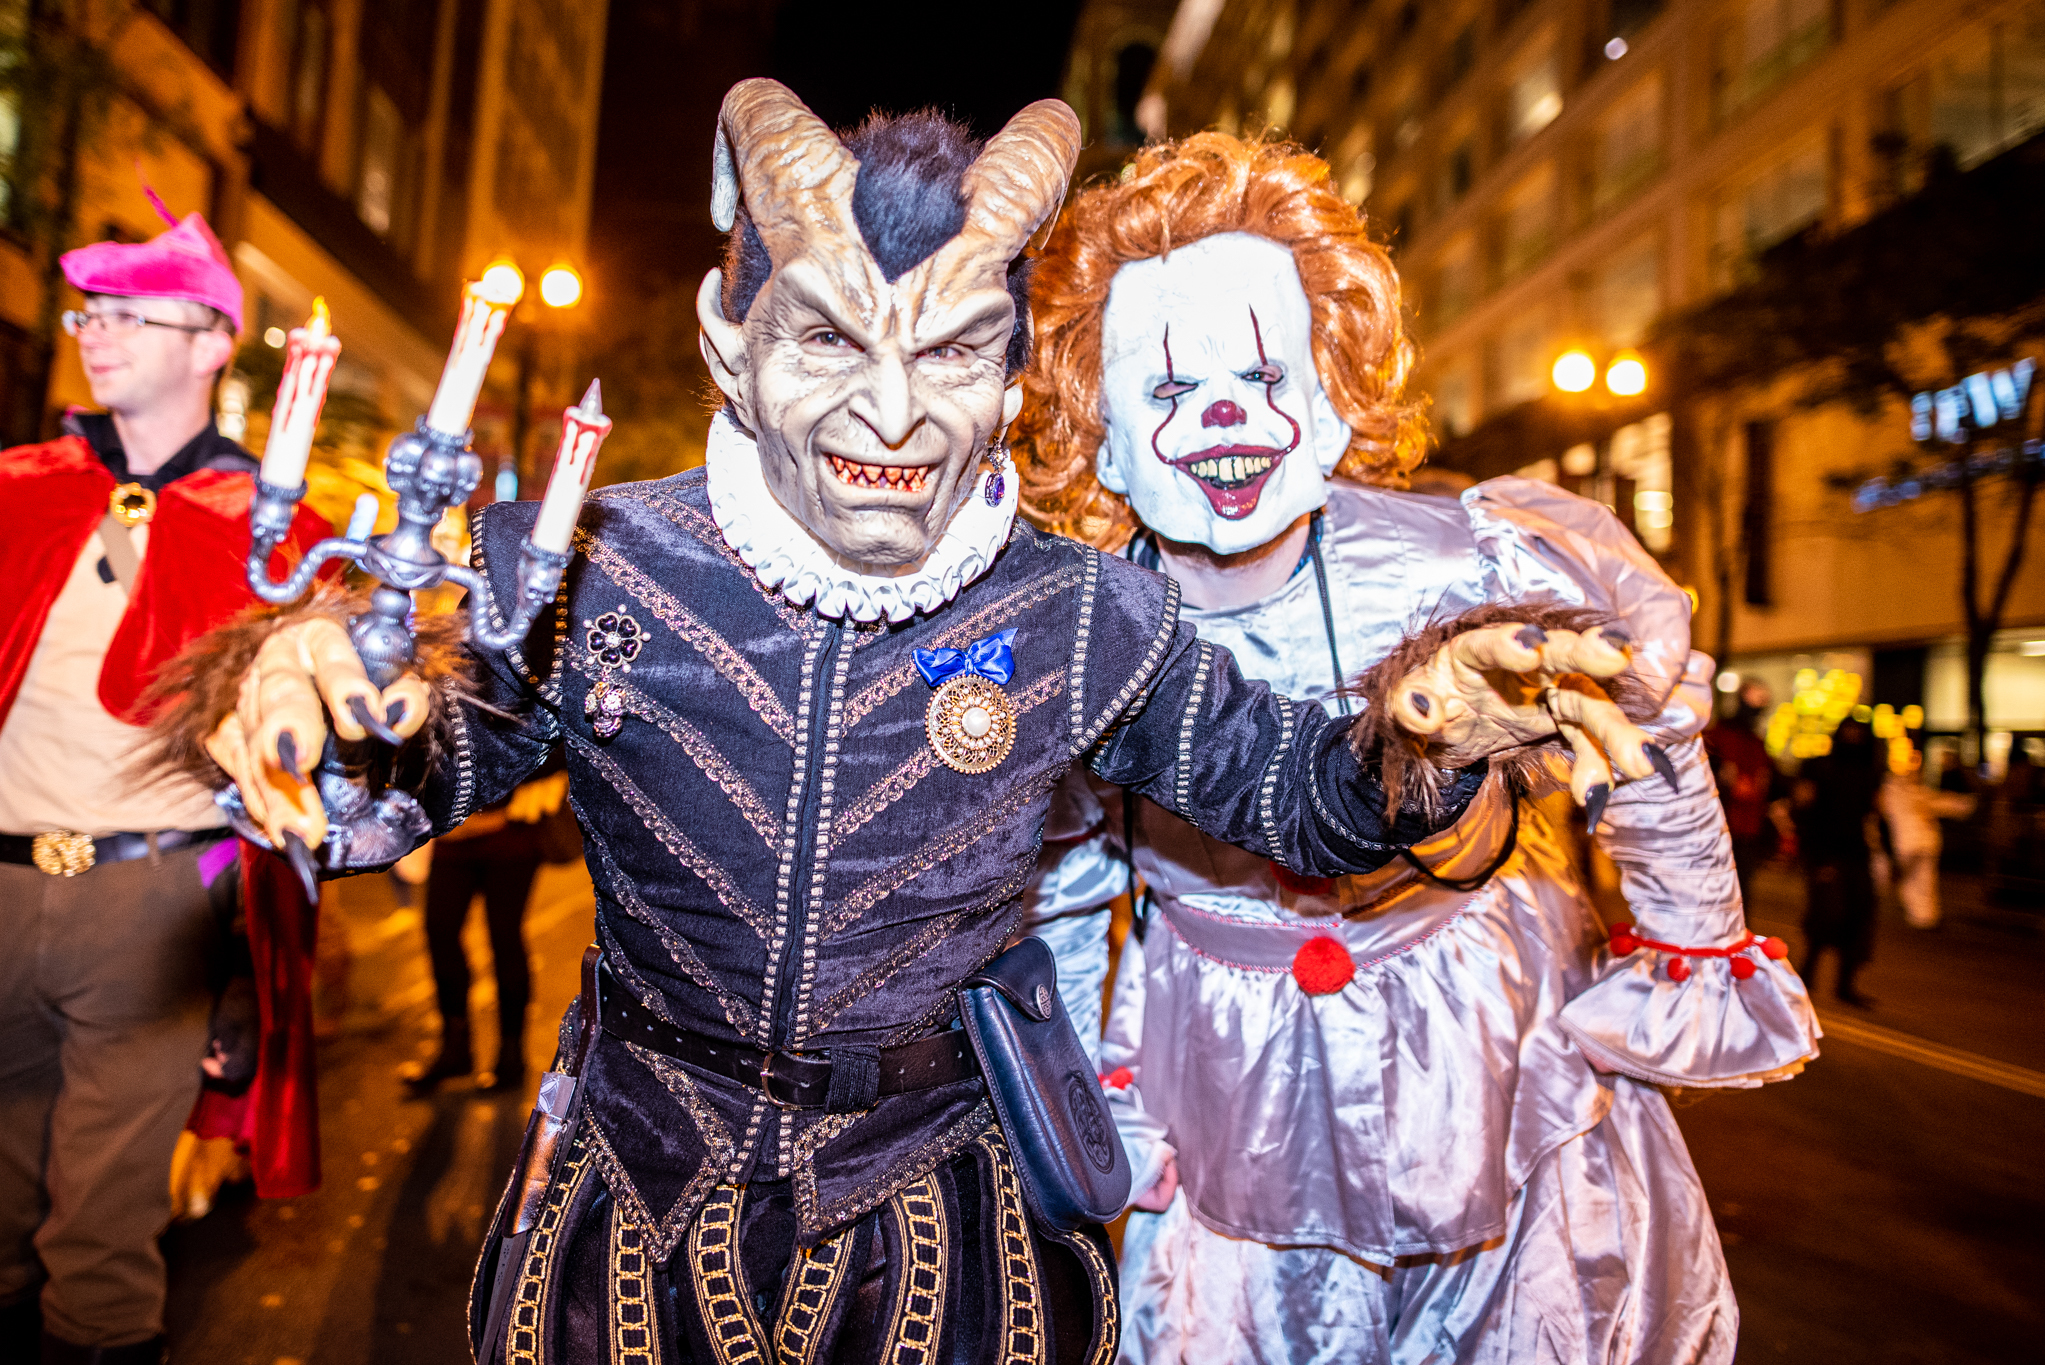 Things To Do In Chicago On Halloween 2020 Your Complete Guide to Halloween in Chicago 2020